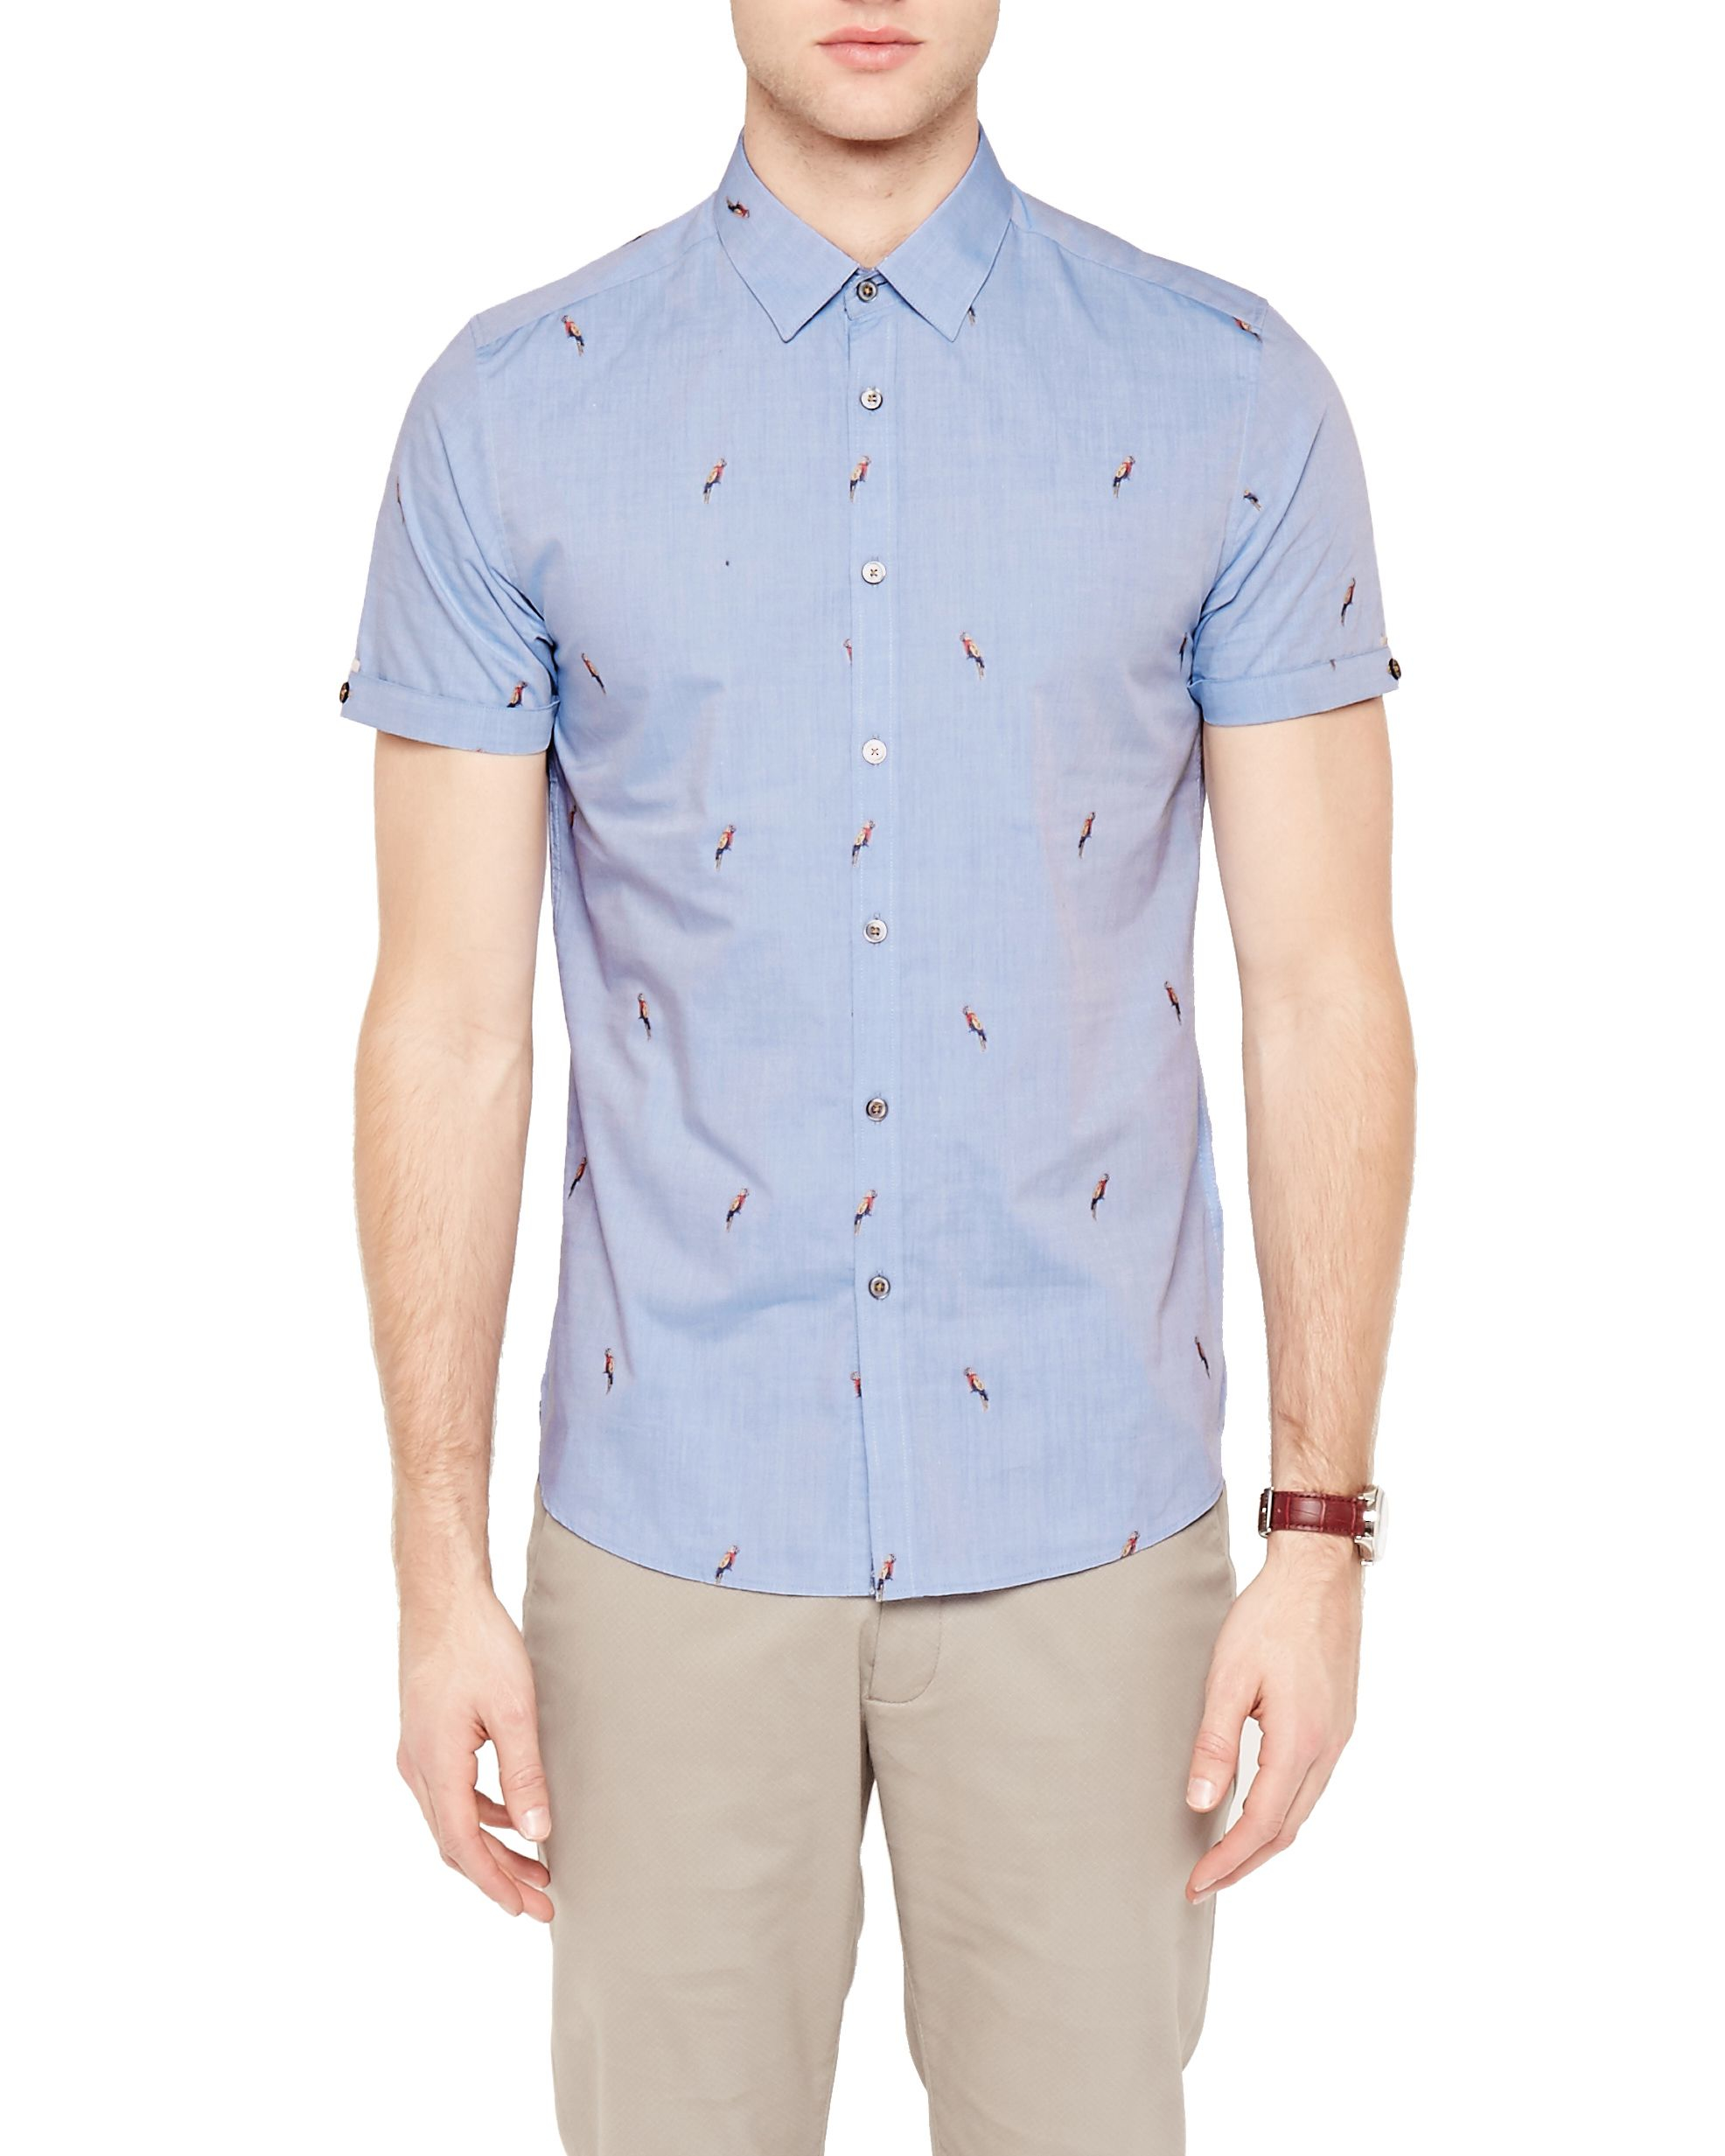 Ted baker parroti parrot print cotton shirt in blue for for Ted baker blue shirt